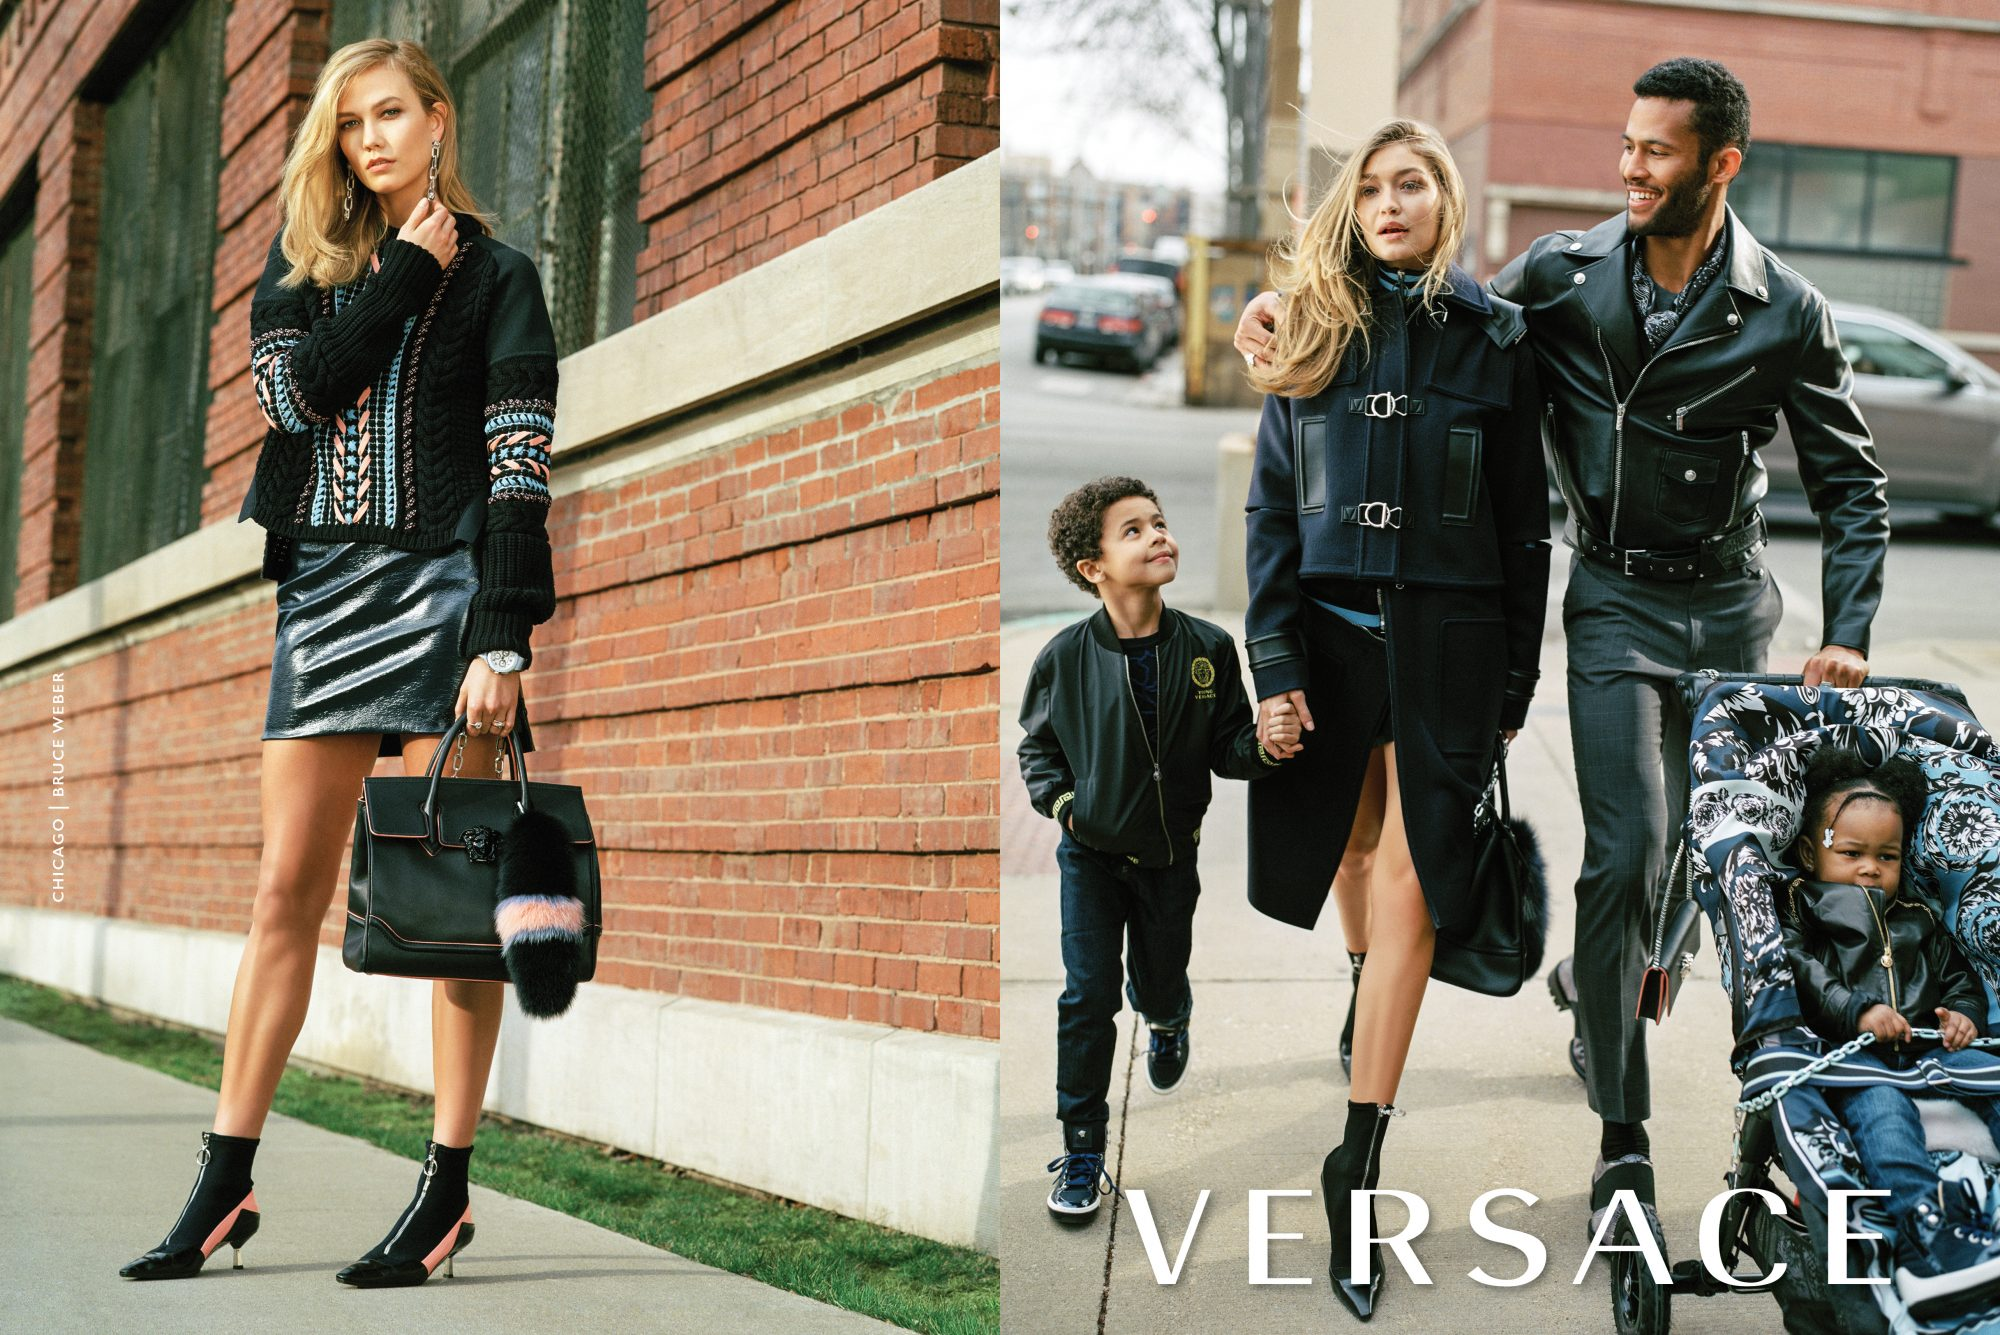 Here's What Karlie Kloss and Gigi Hadid Would Look Like as Stylish Moms in Versace's Fall 2016 Campaign